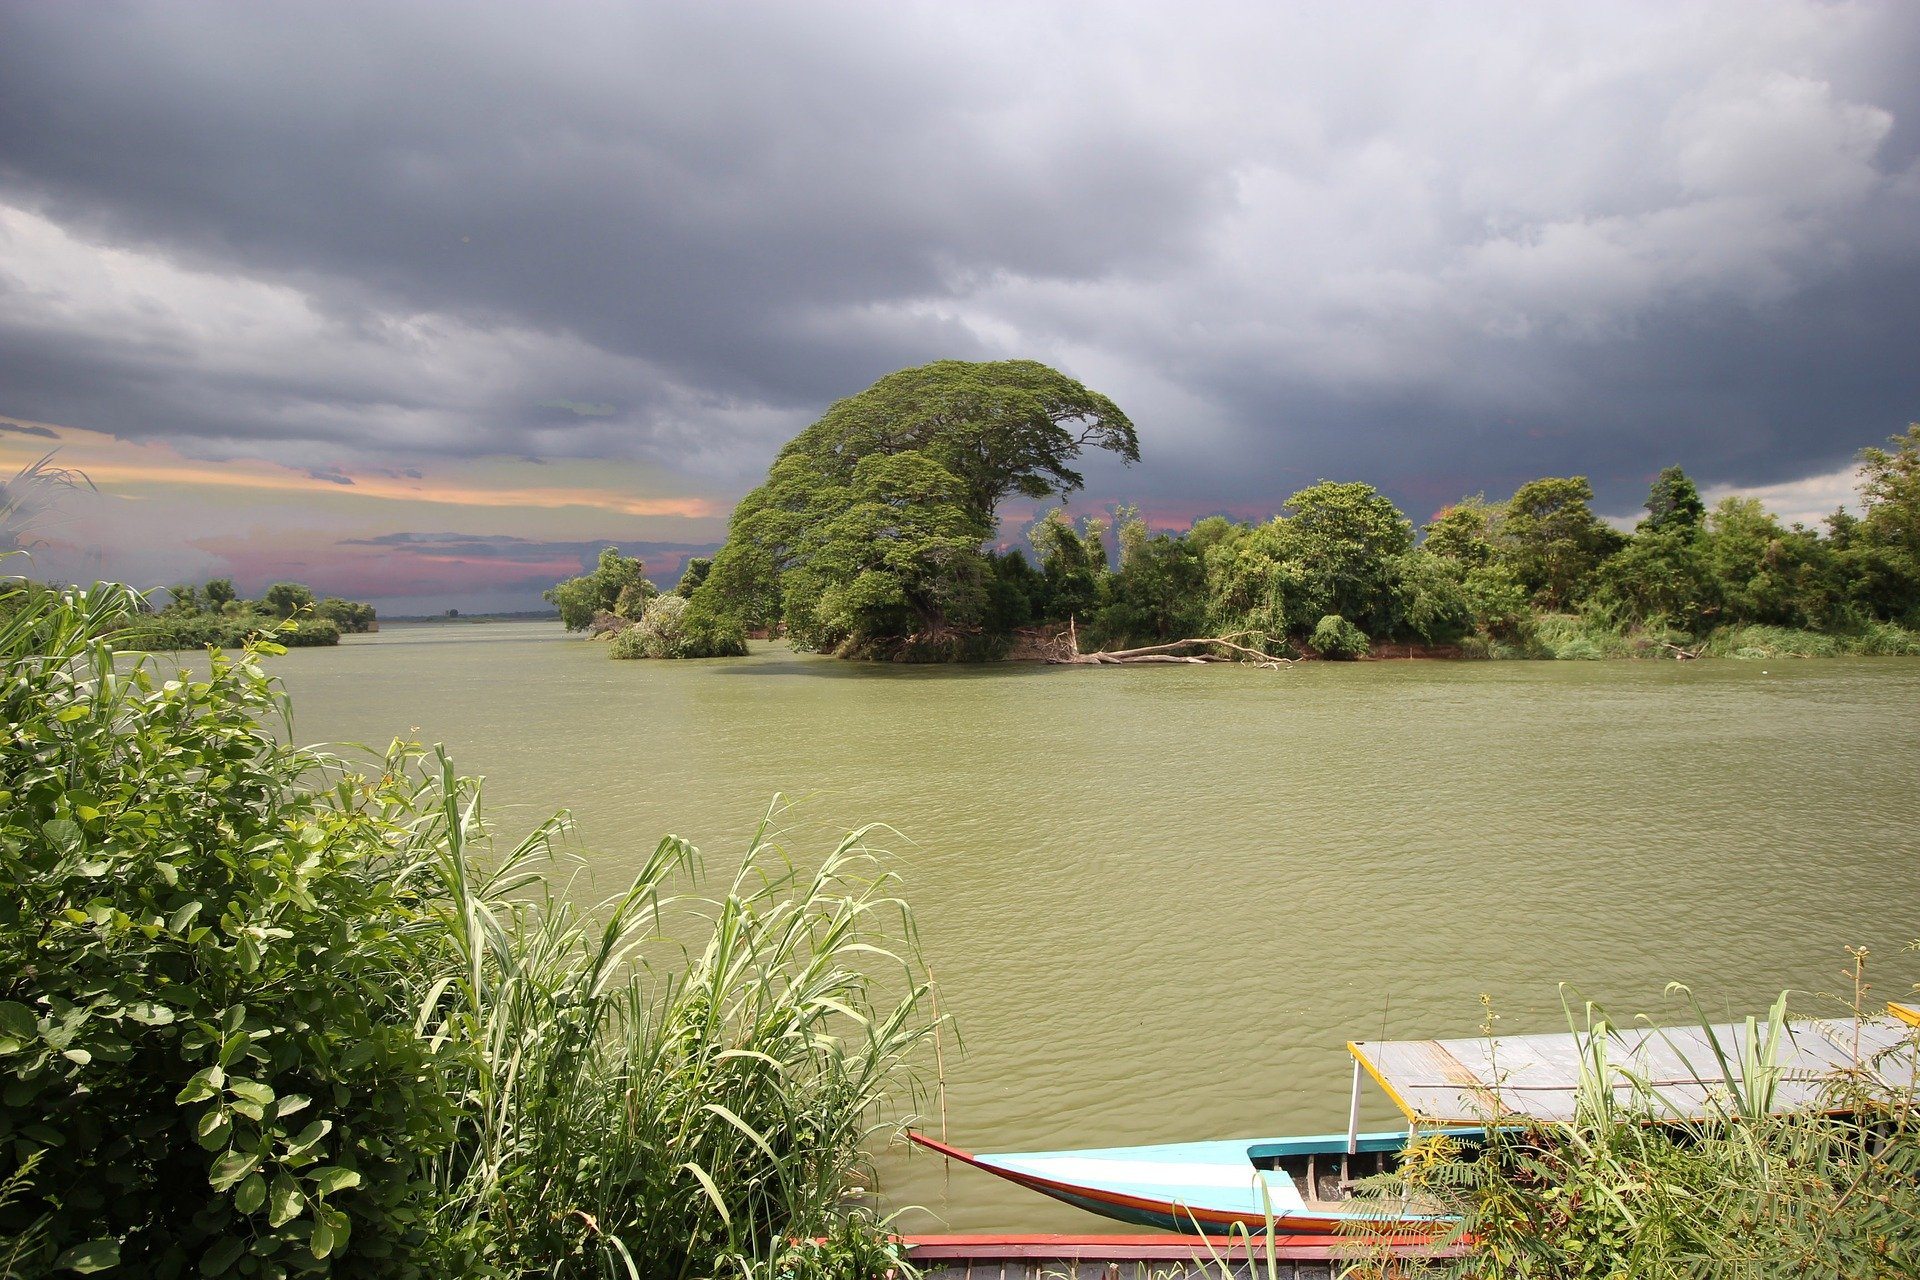 Mekong River at Don Det